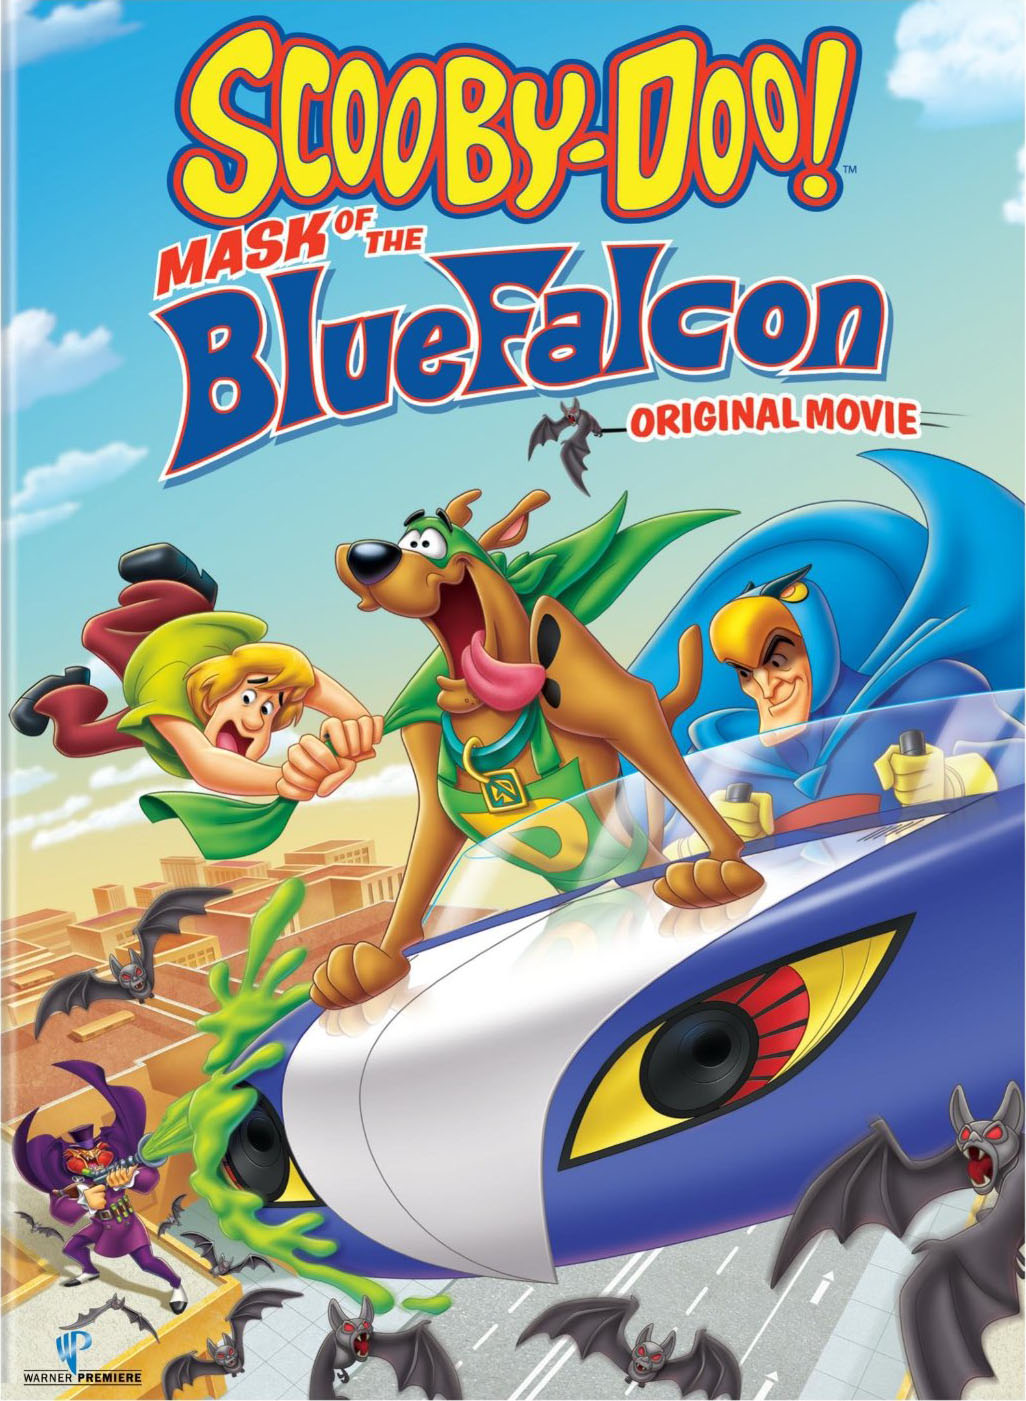 Scooby-Doo! Mask of the Blue Falcon ddl